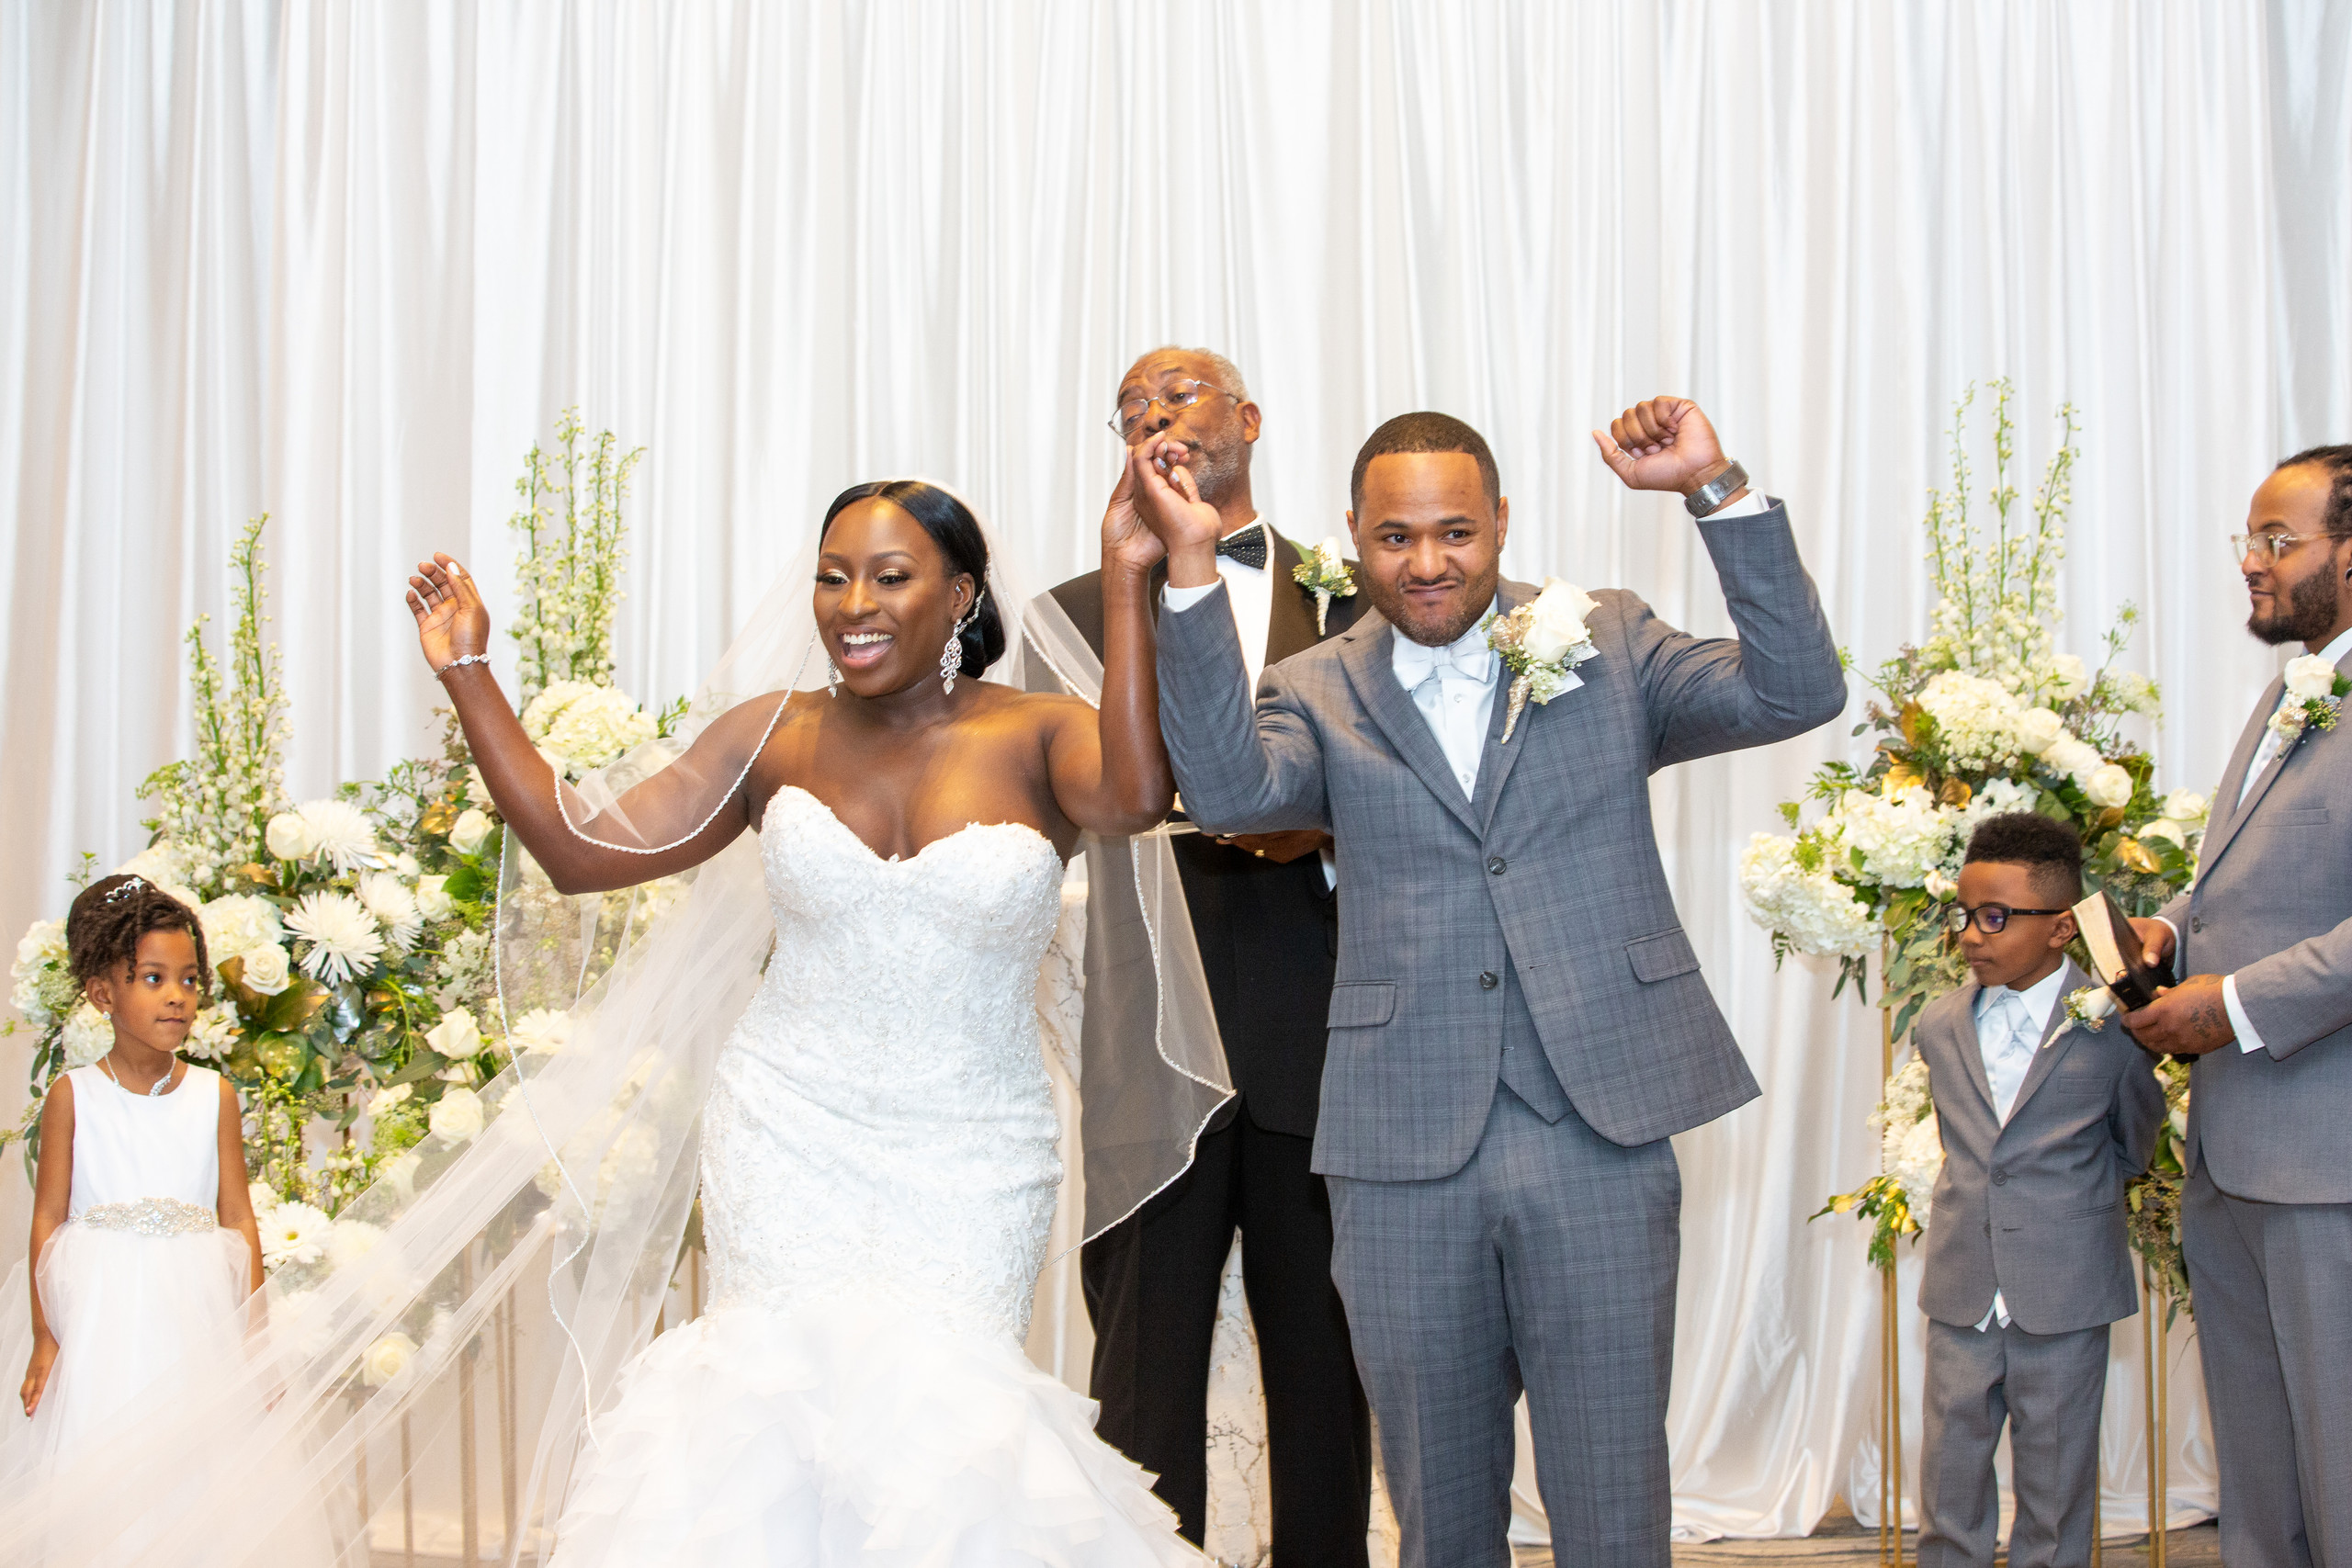 The bride and groom celebrate as the begin the recessional during the the wedding ceremony at the Hilton Main in Norfolk, Virginia.